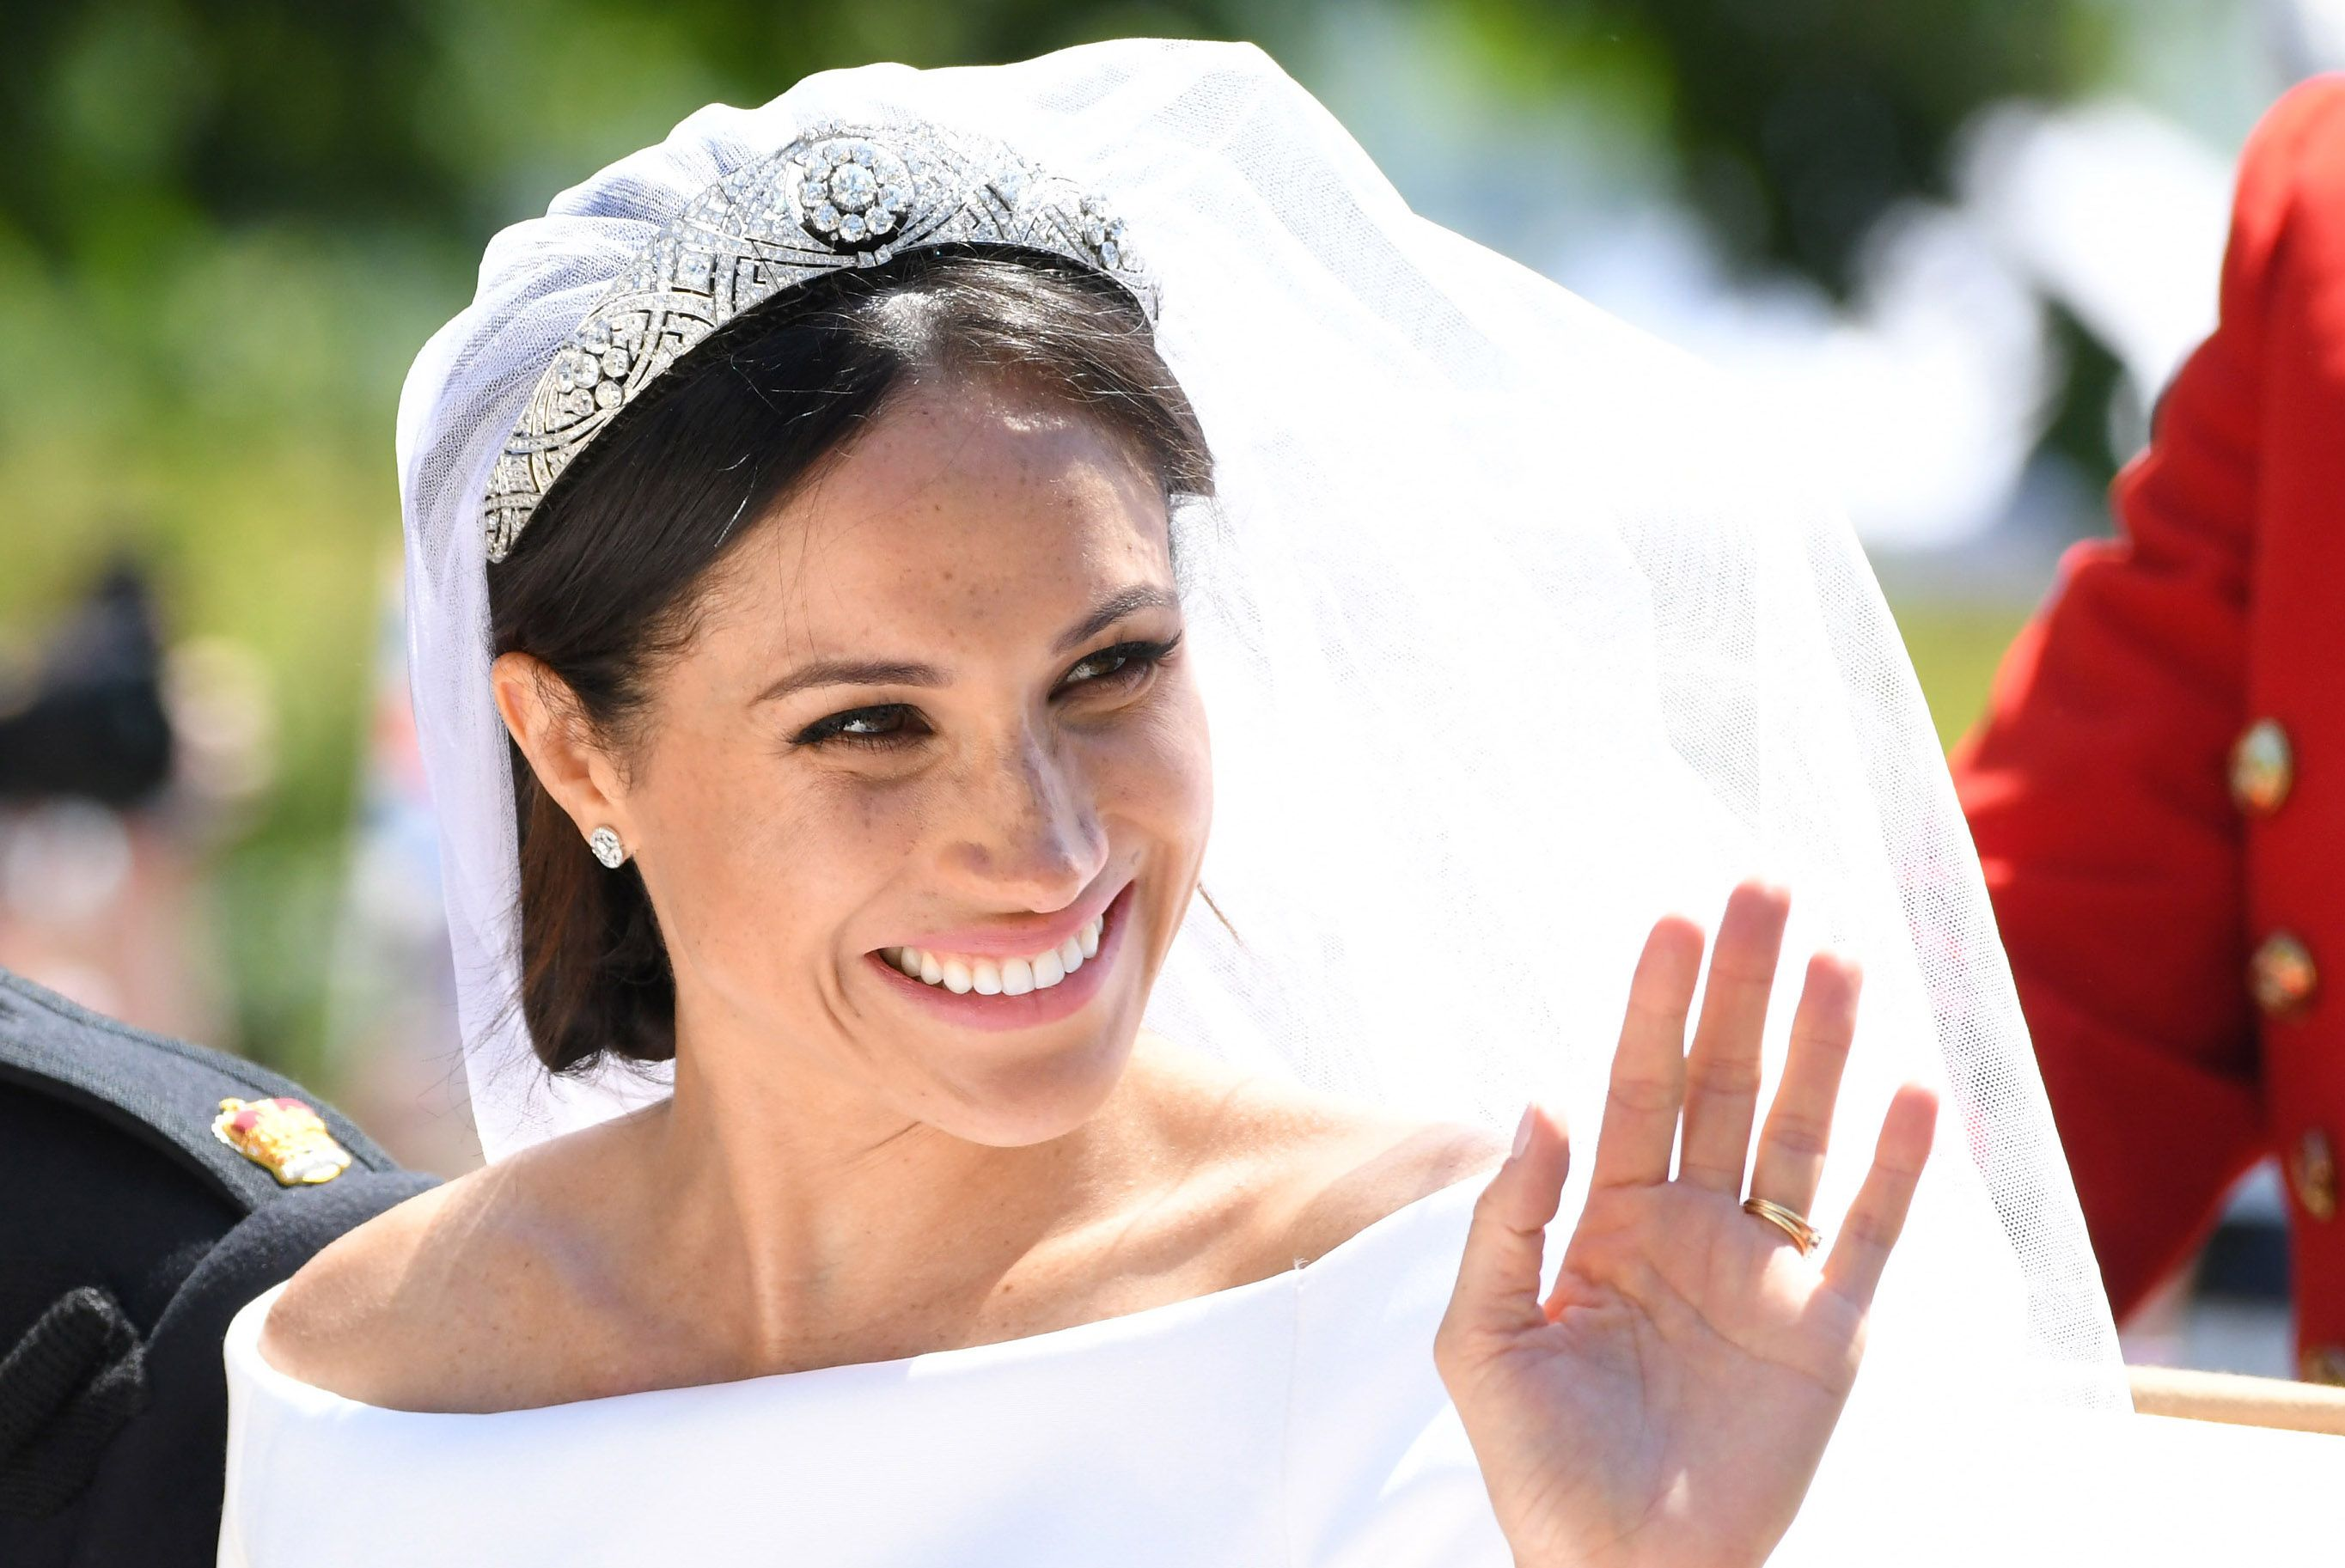 There was a lot of speculation going into the royal wedding about which tiara the new Duchess of Sussex would don for her big day. Ultimately, the actress borrowed a diamond and platinum bandeau setting from the Queen's collection which also has a special connection for Her Majesty—it belonged to Queen Mary, Elizabeth II's grandmother and was officially bequeathed to the Queen upon Mary's death.